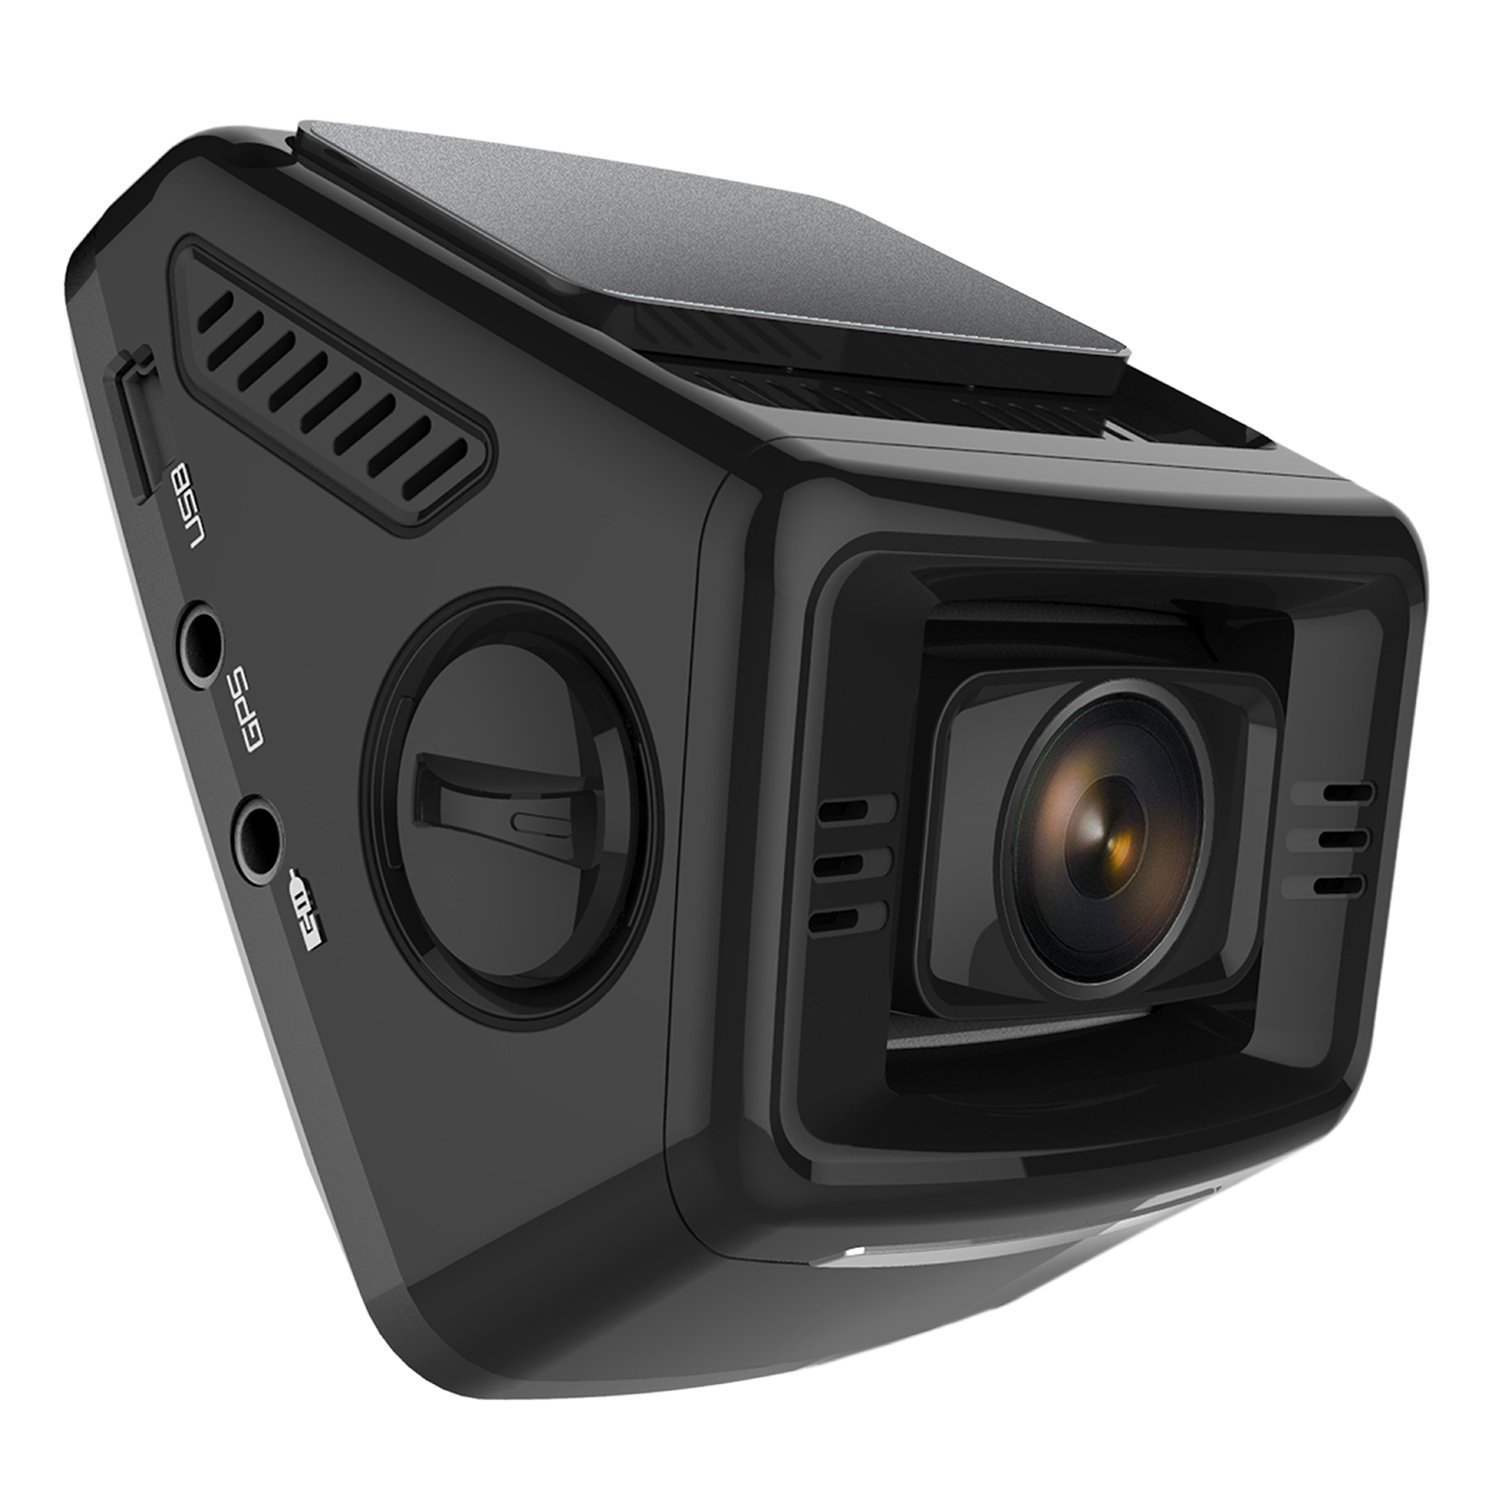 "Dash Cam Camera for Cars with Night Vision, Pajuva 2.4"" LCD Full HD 1080"